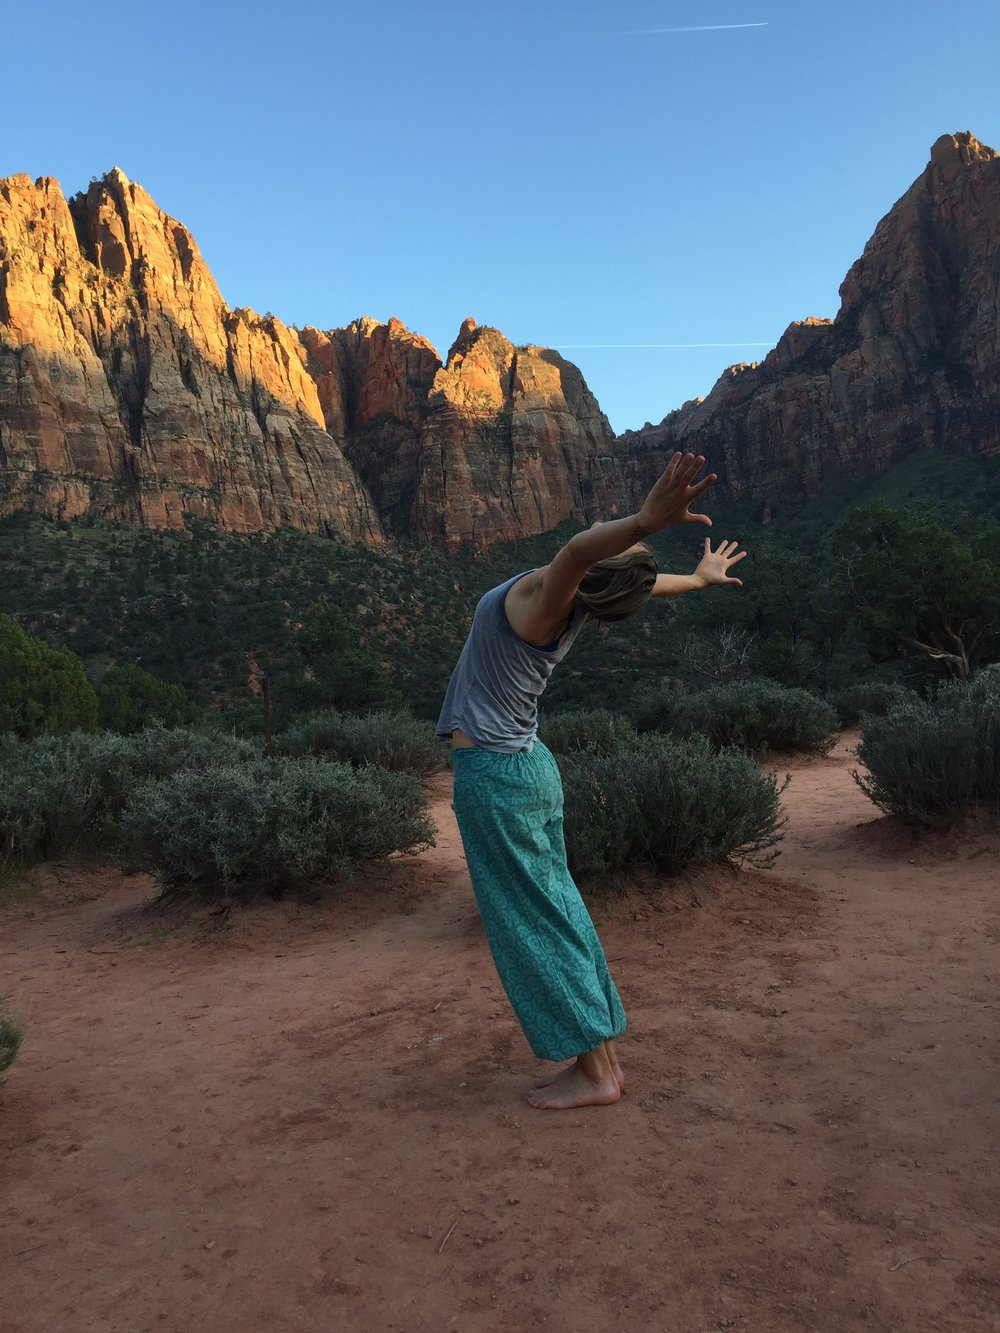 Integrative Yoga~ Integrative Yoga - Enhance the quality of all aspects of your visit. Private Yoga experiences can be customized and integrated into your travel plans and activities including hiking, canyoneering, private, daily classes in the field or at your lodging. Please contact us us for more details